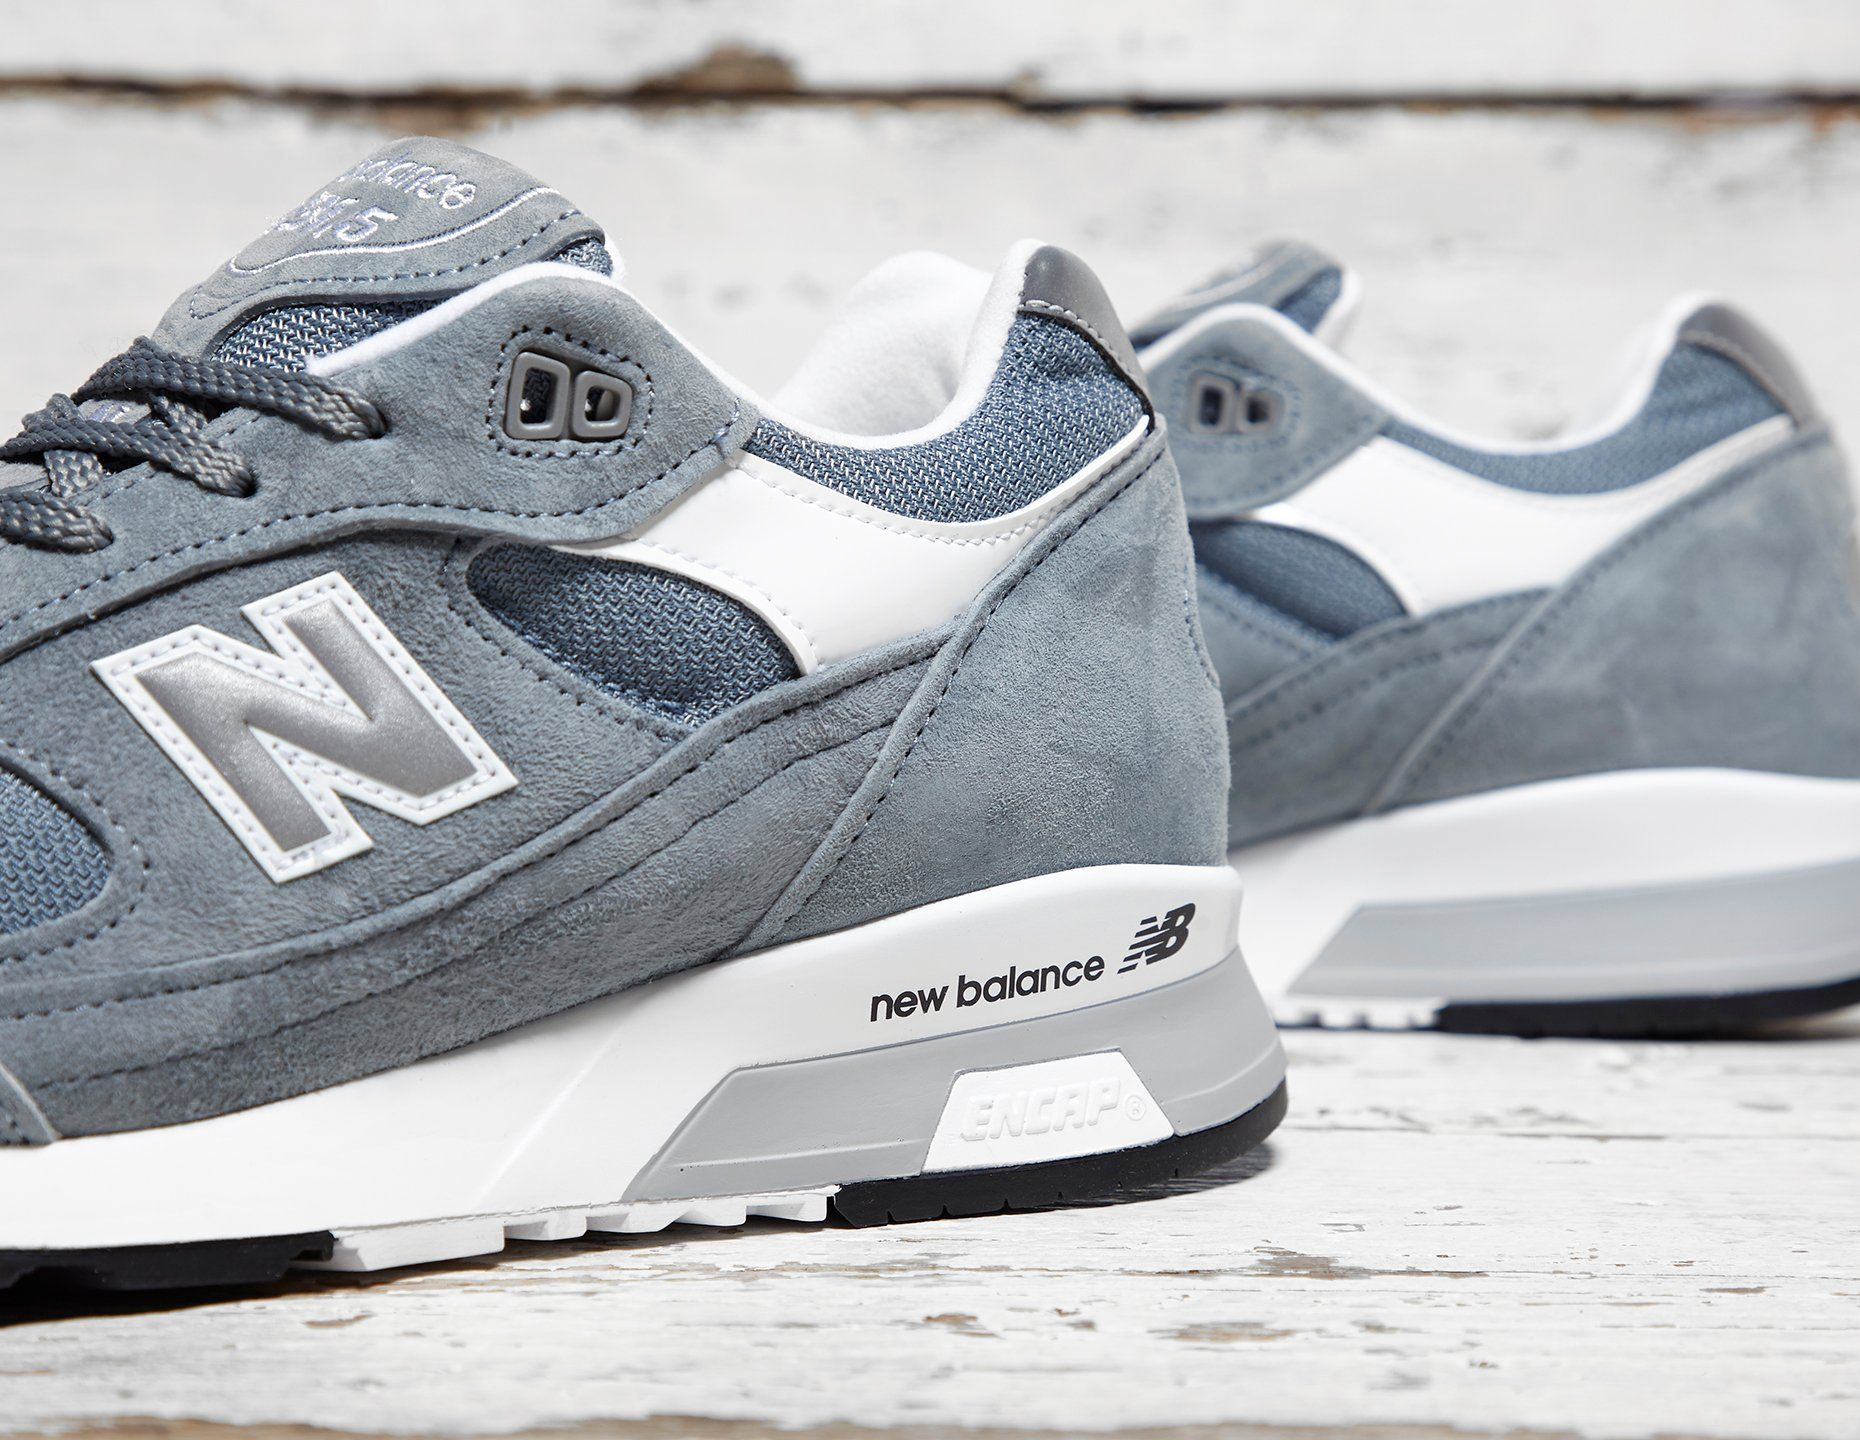 New Balance 999.1 - Made in England